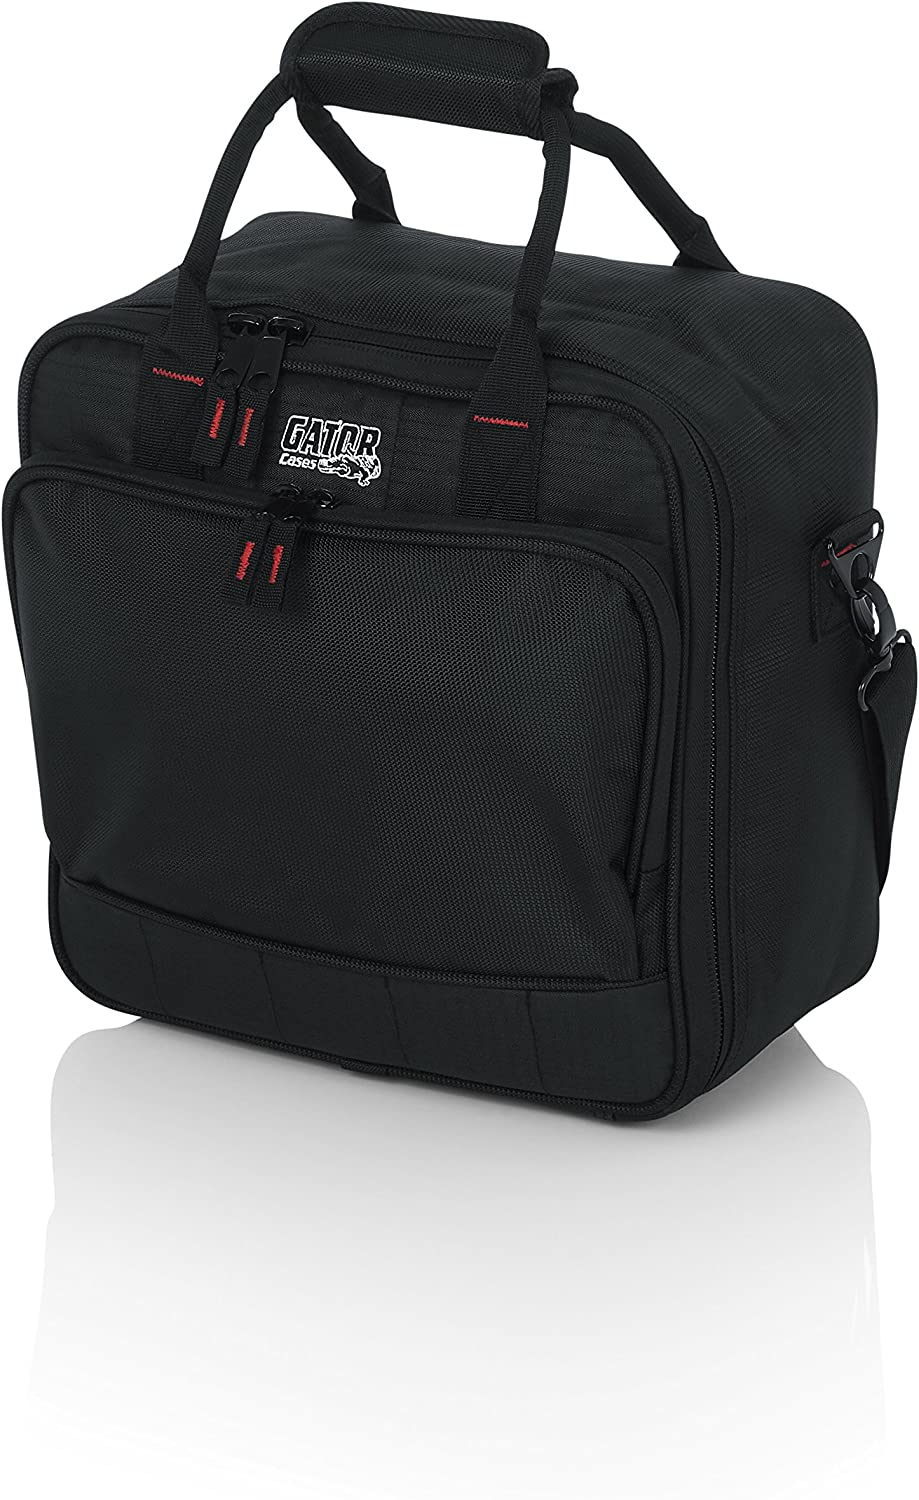 Gator Cases Padded Nylon Mixer/Gear Carry Bag with Removable Strap